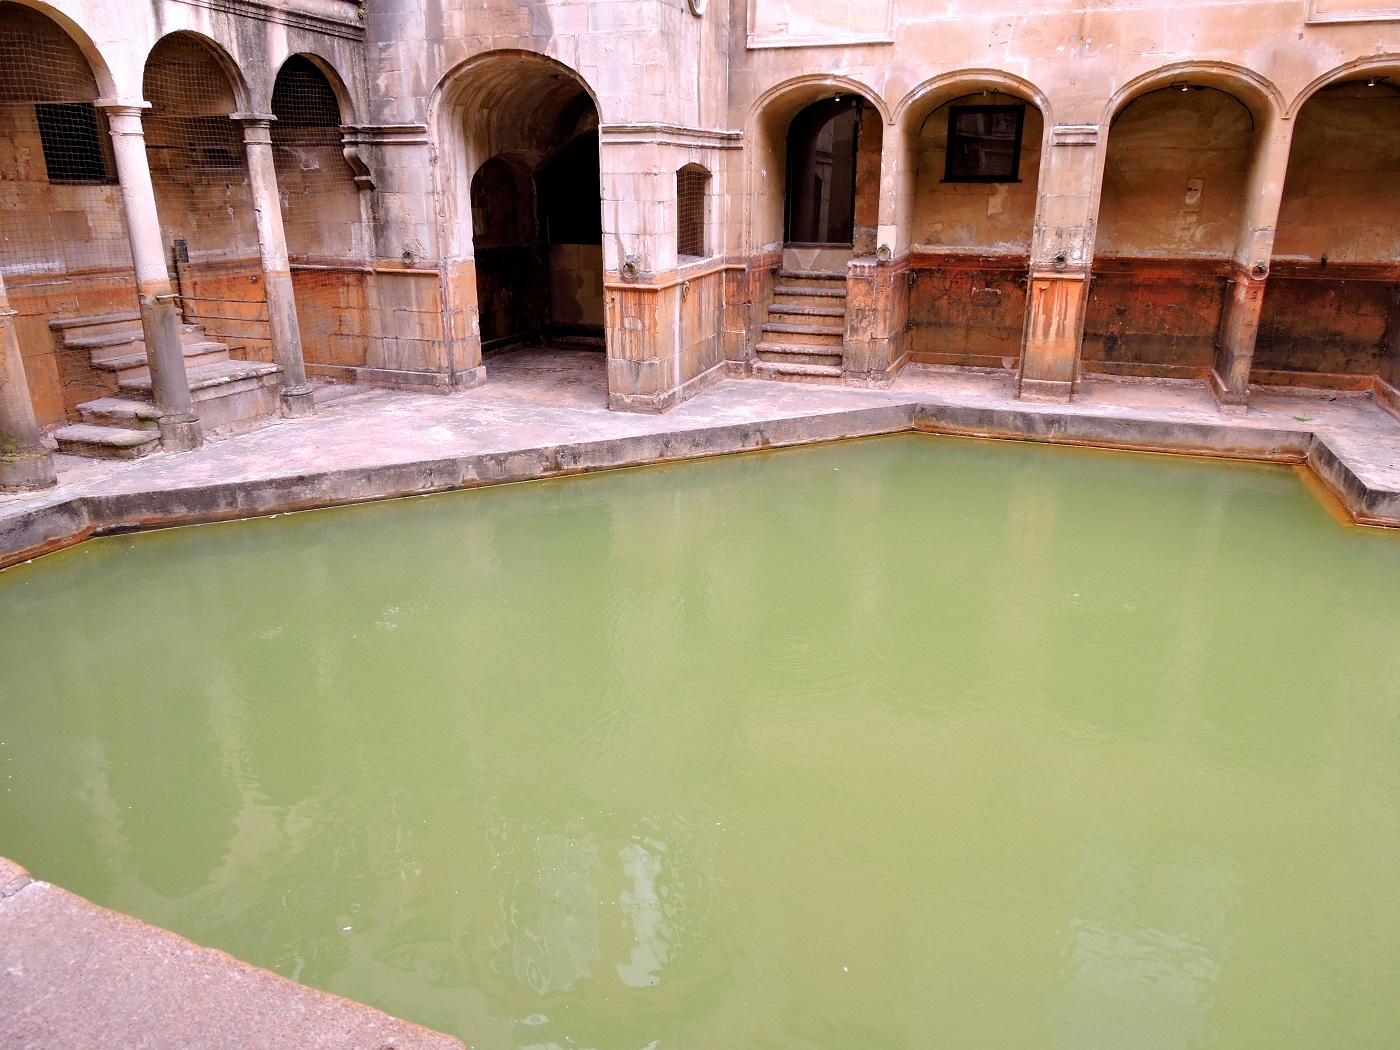 the sacred spring and King's bath